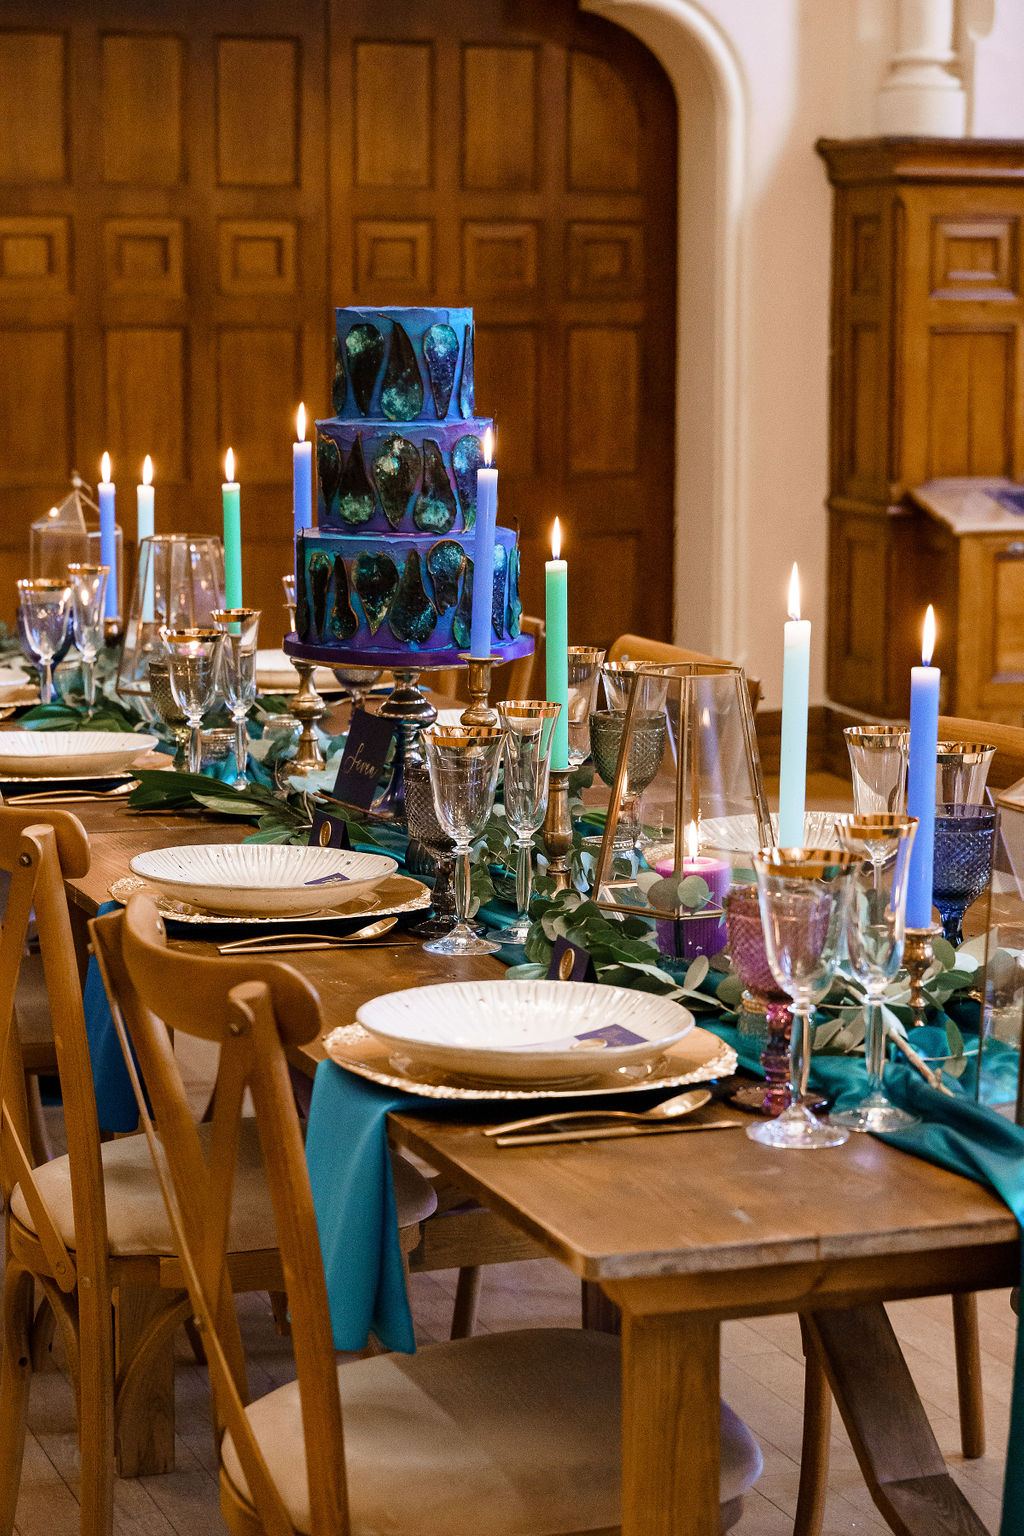 peacock themed wedding - peacock wedding - unique wedding colour scheme - quirky wedding - luxurious wedding - unique wedding table - unique wedding decoration - peacock wedding cake